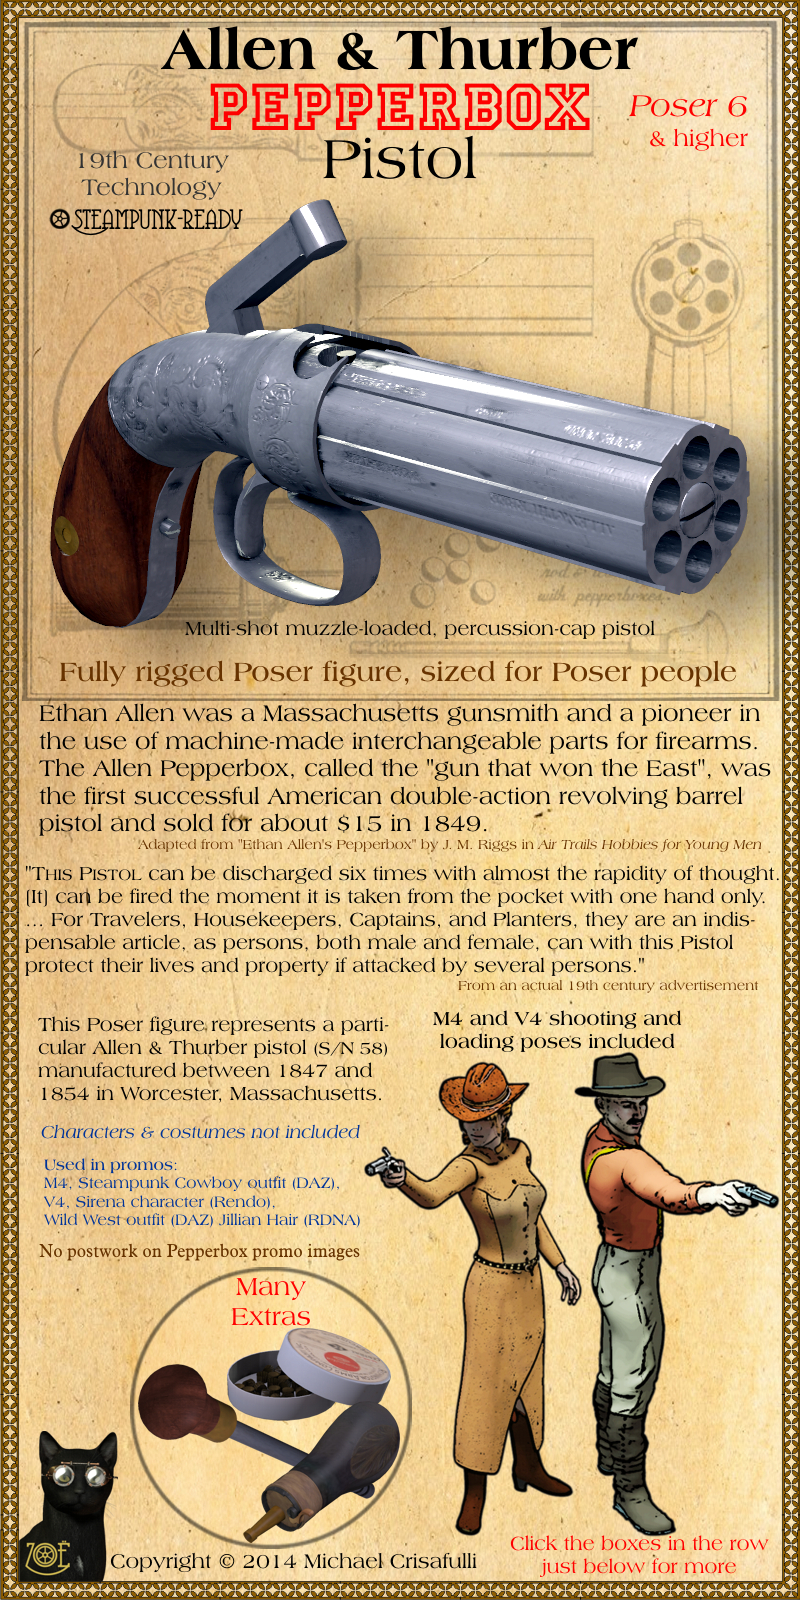 Allen & Thurber Pepperbox Pistol Pics, Weapons Collection